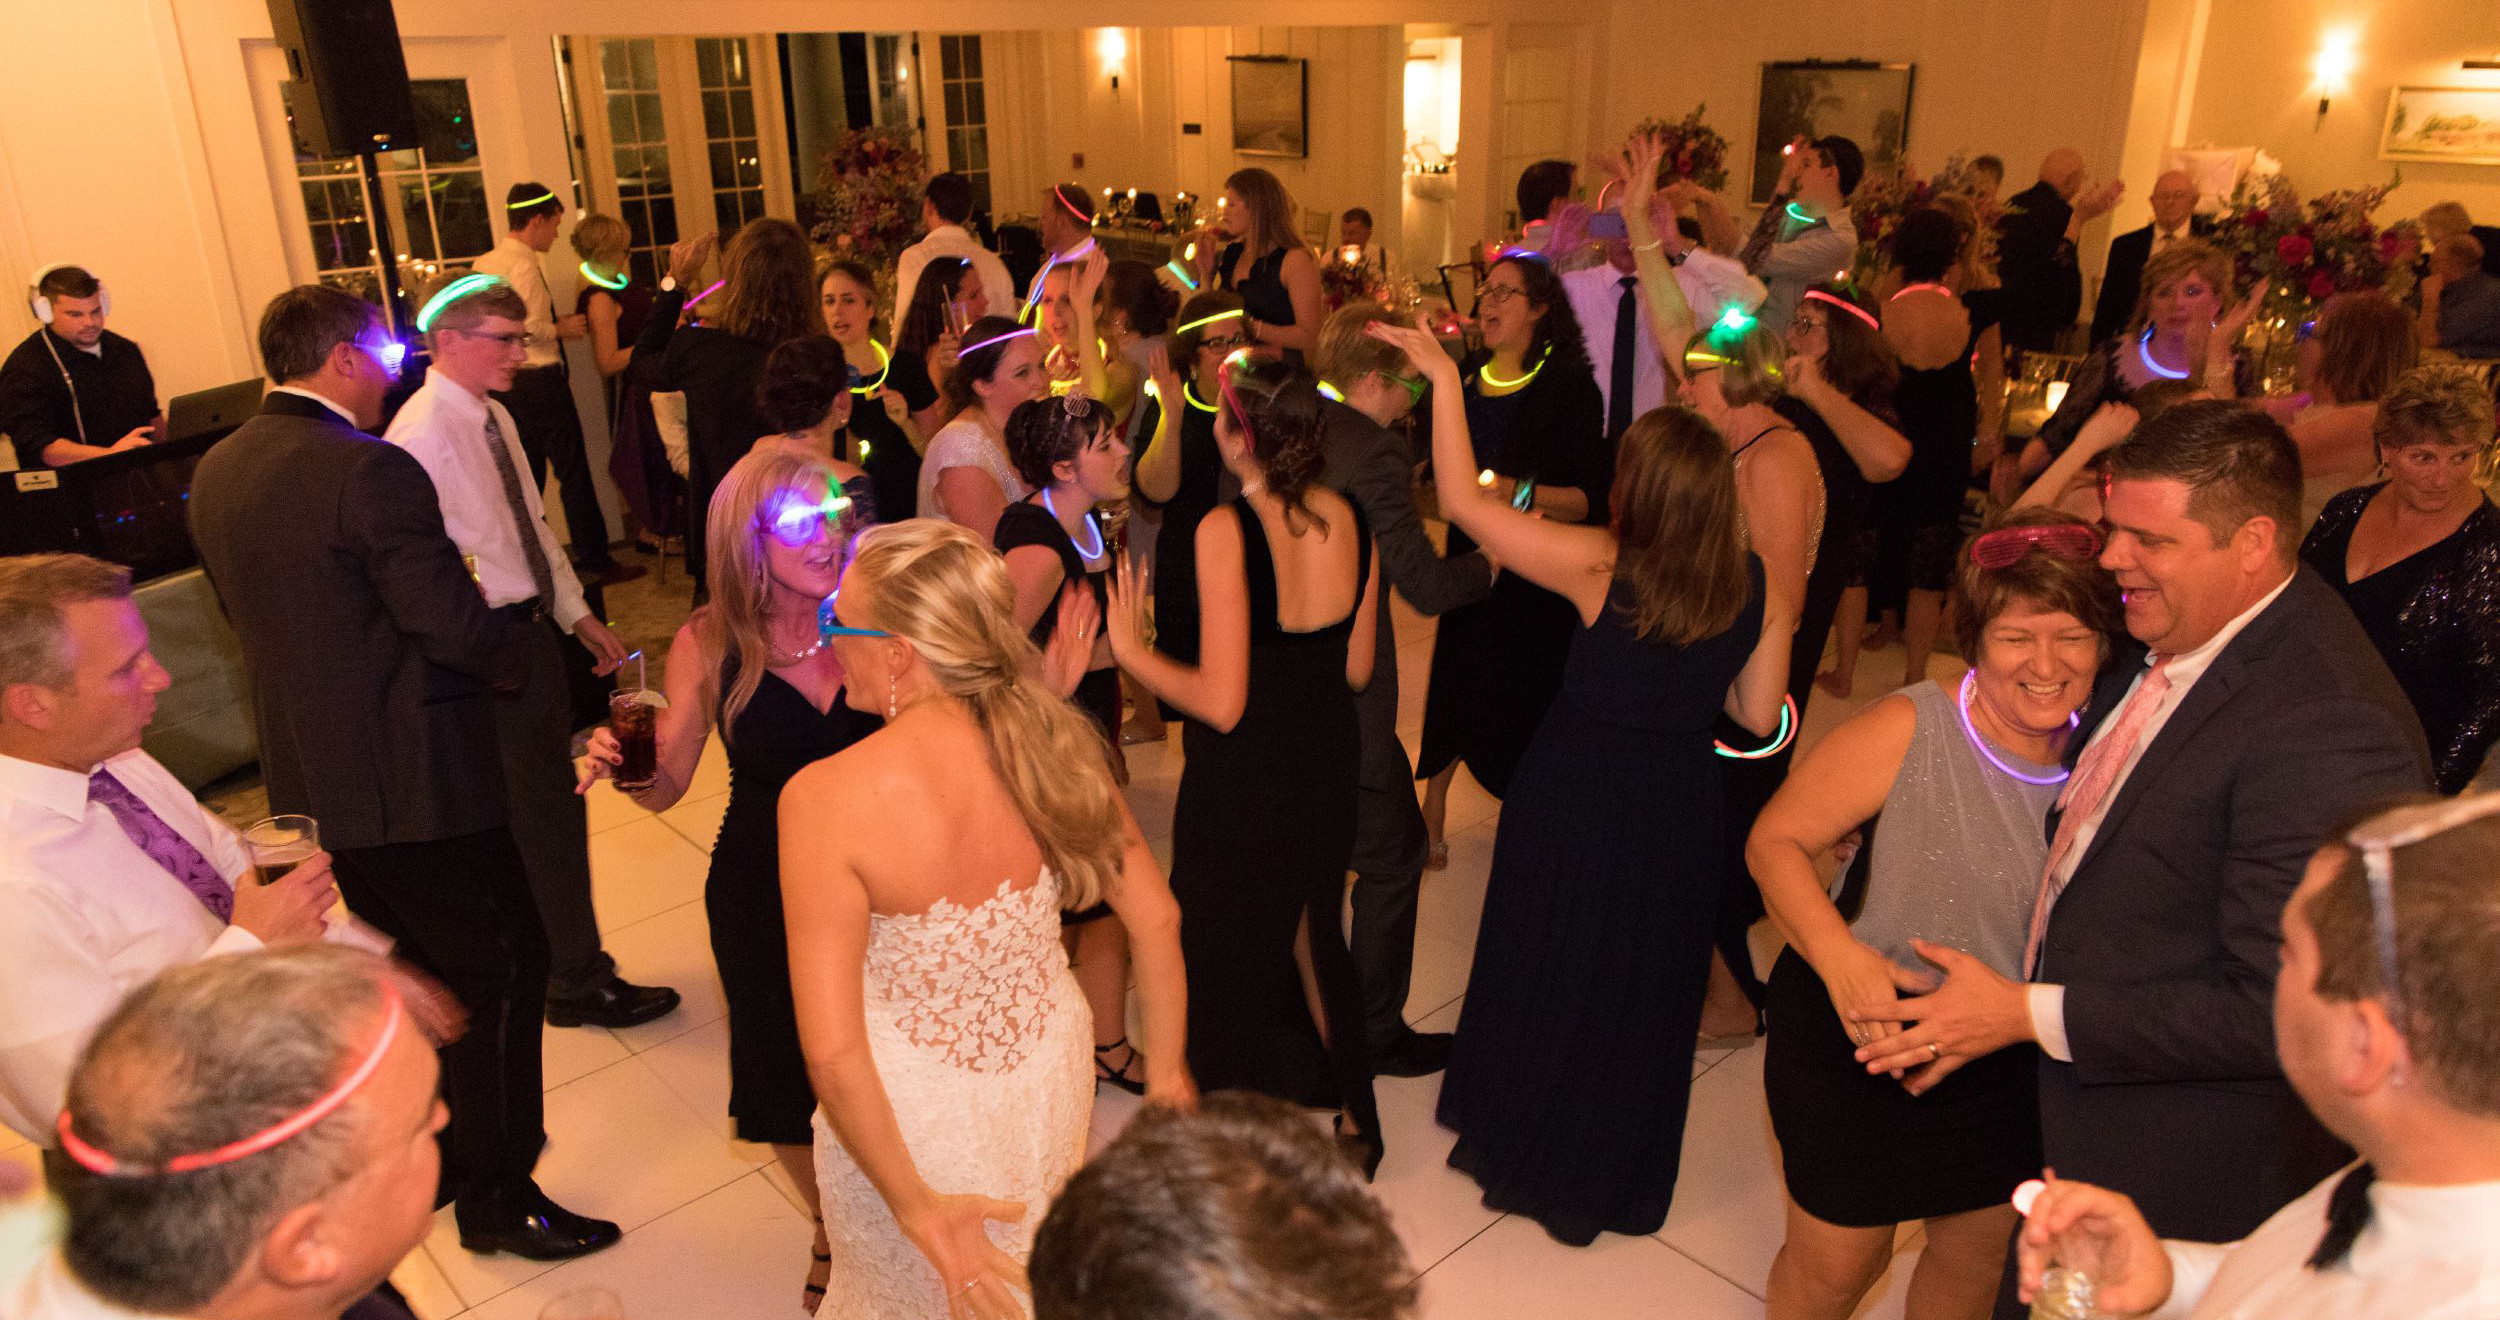 wedding guests dancing with glow sticks on